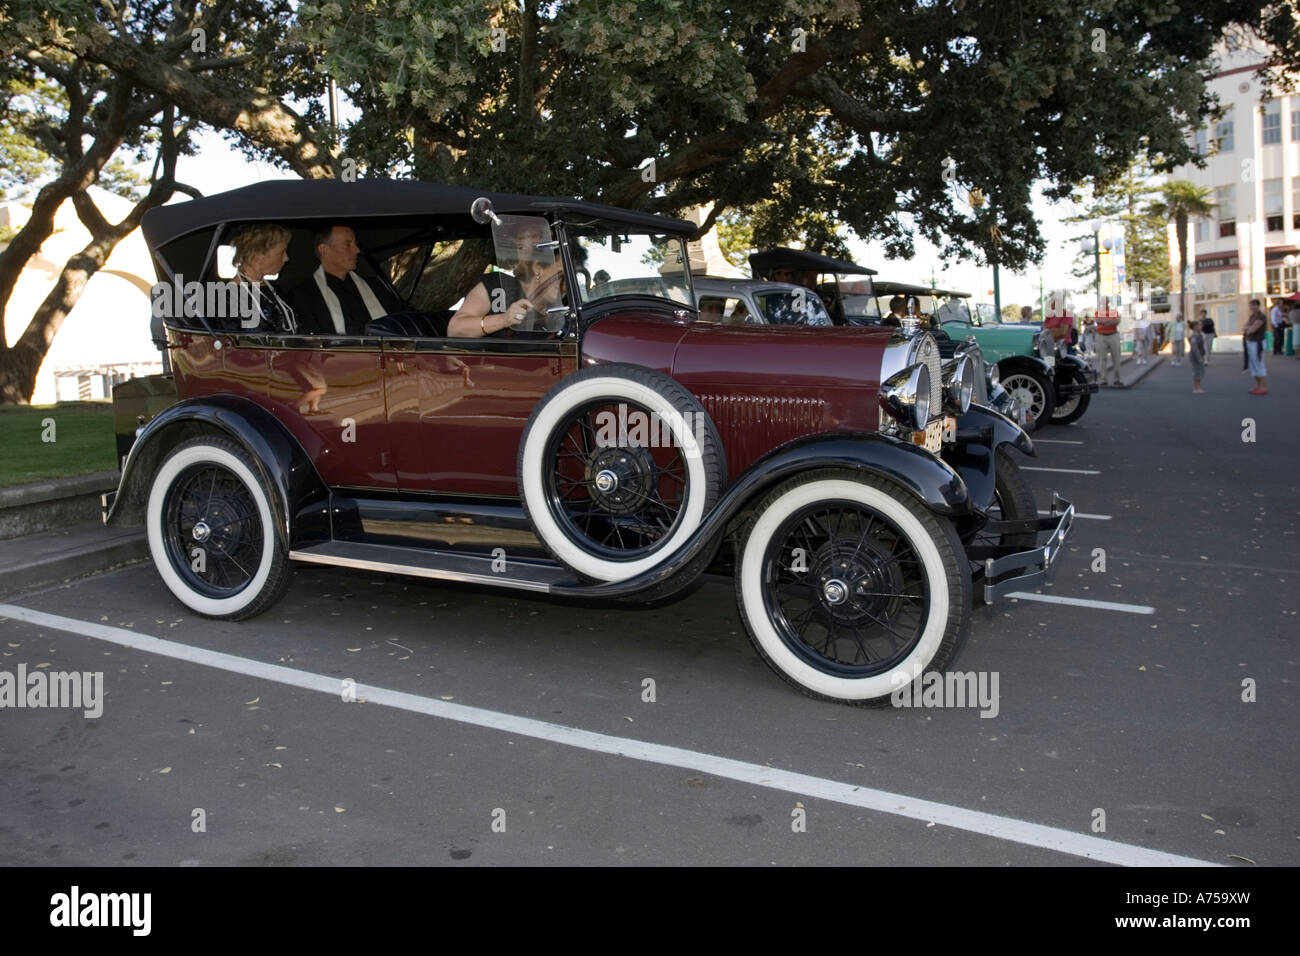 Classic vintage old Ford motor car Art Deco weekend Napier North Island New Zealand - Stock Image